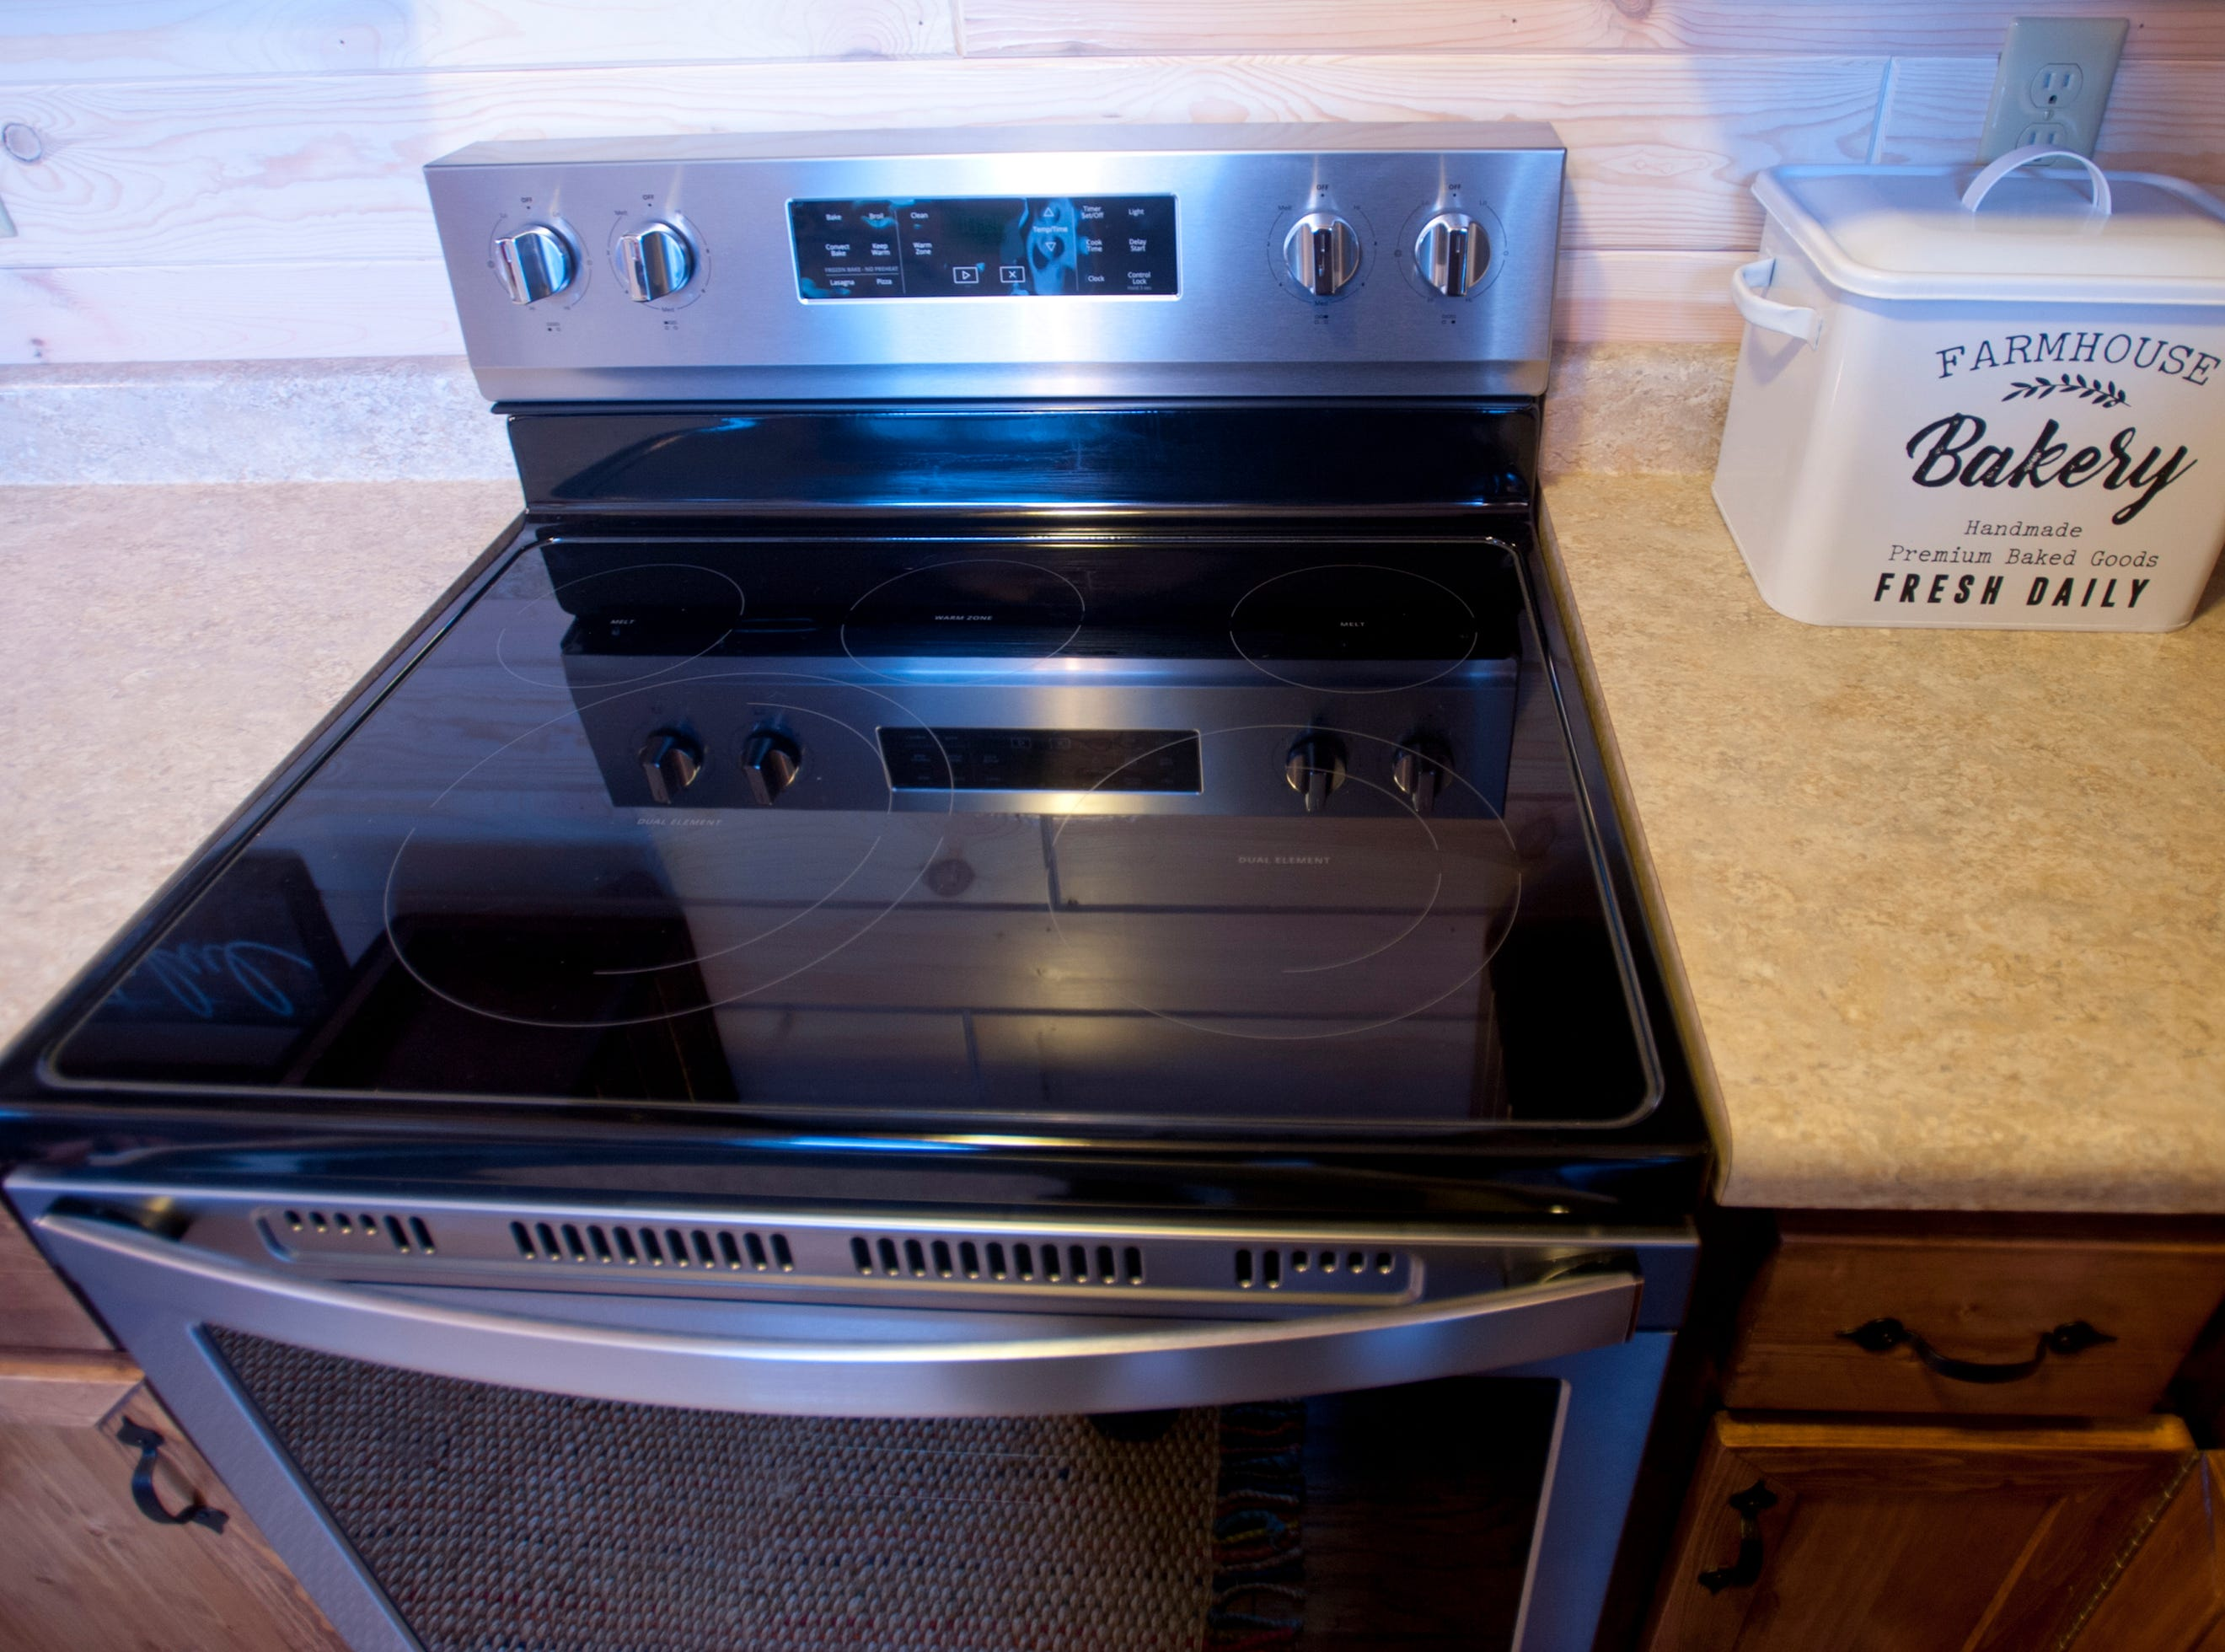 The electric oven in the kitchen.September 10, 2018